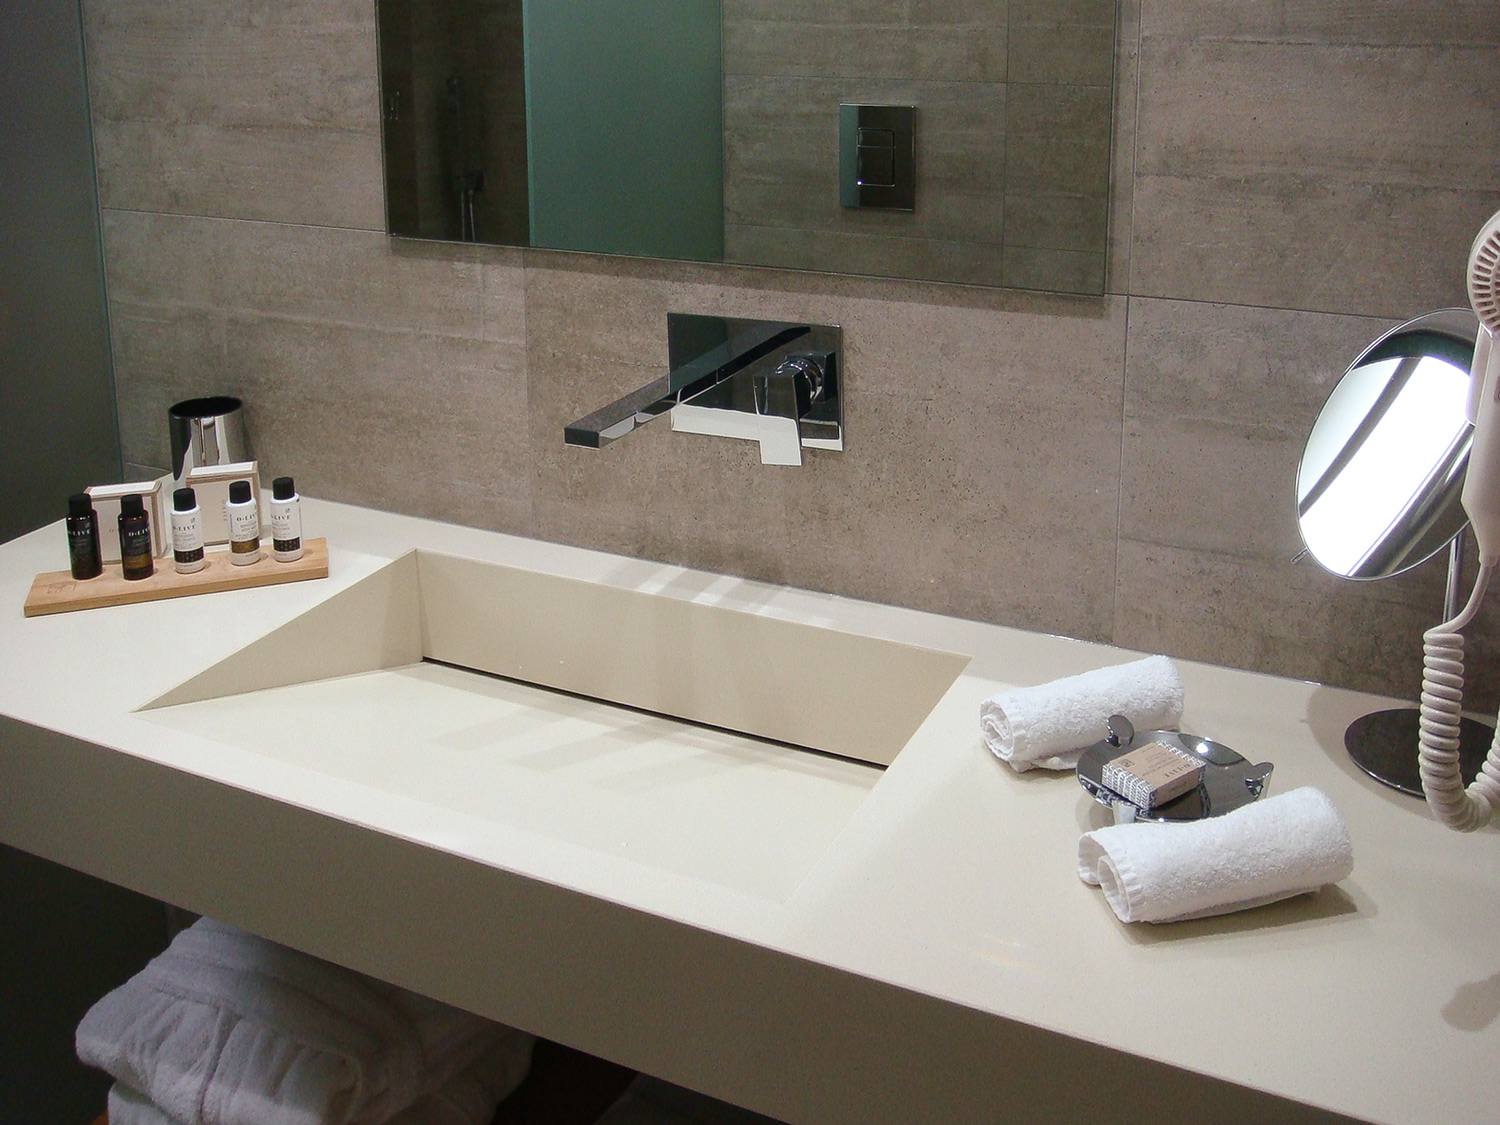 R111-Bathroom-Basin.jpg